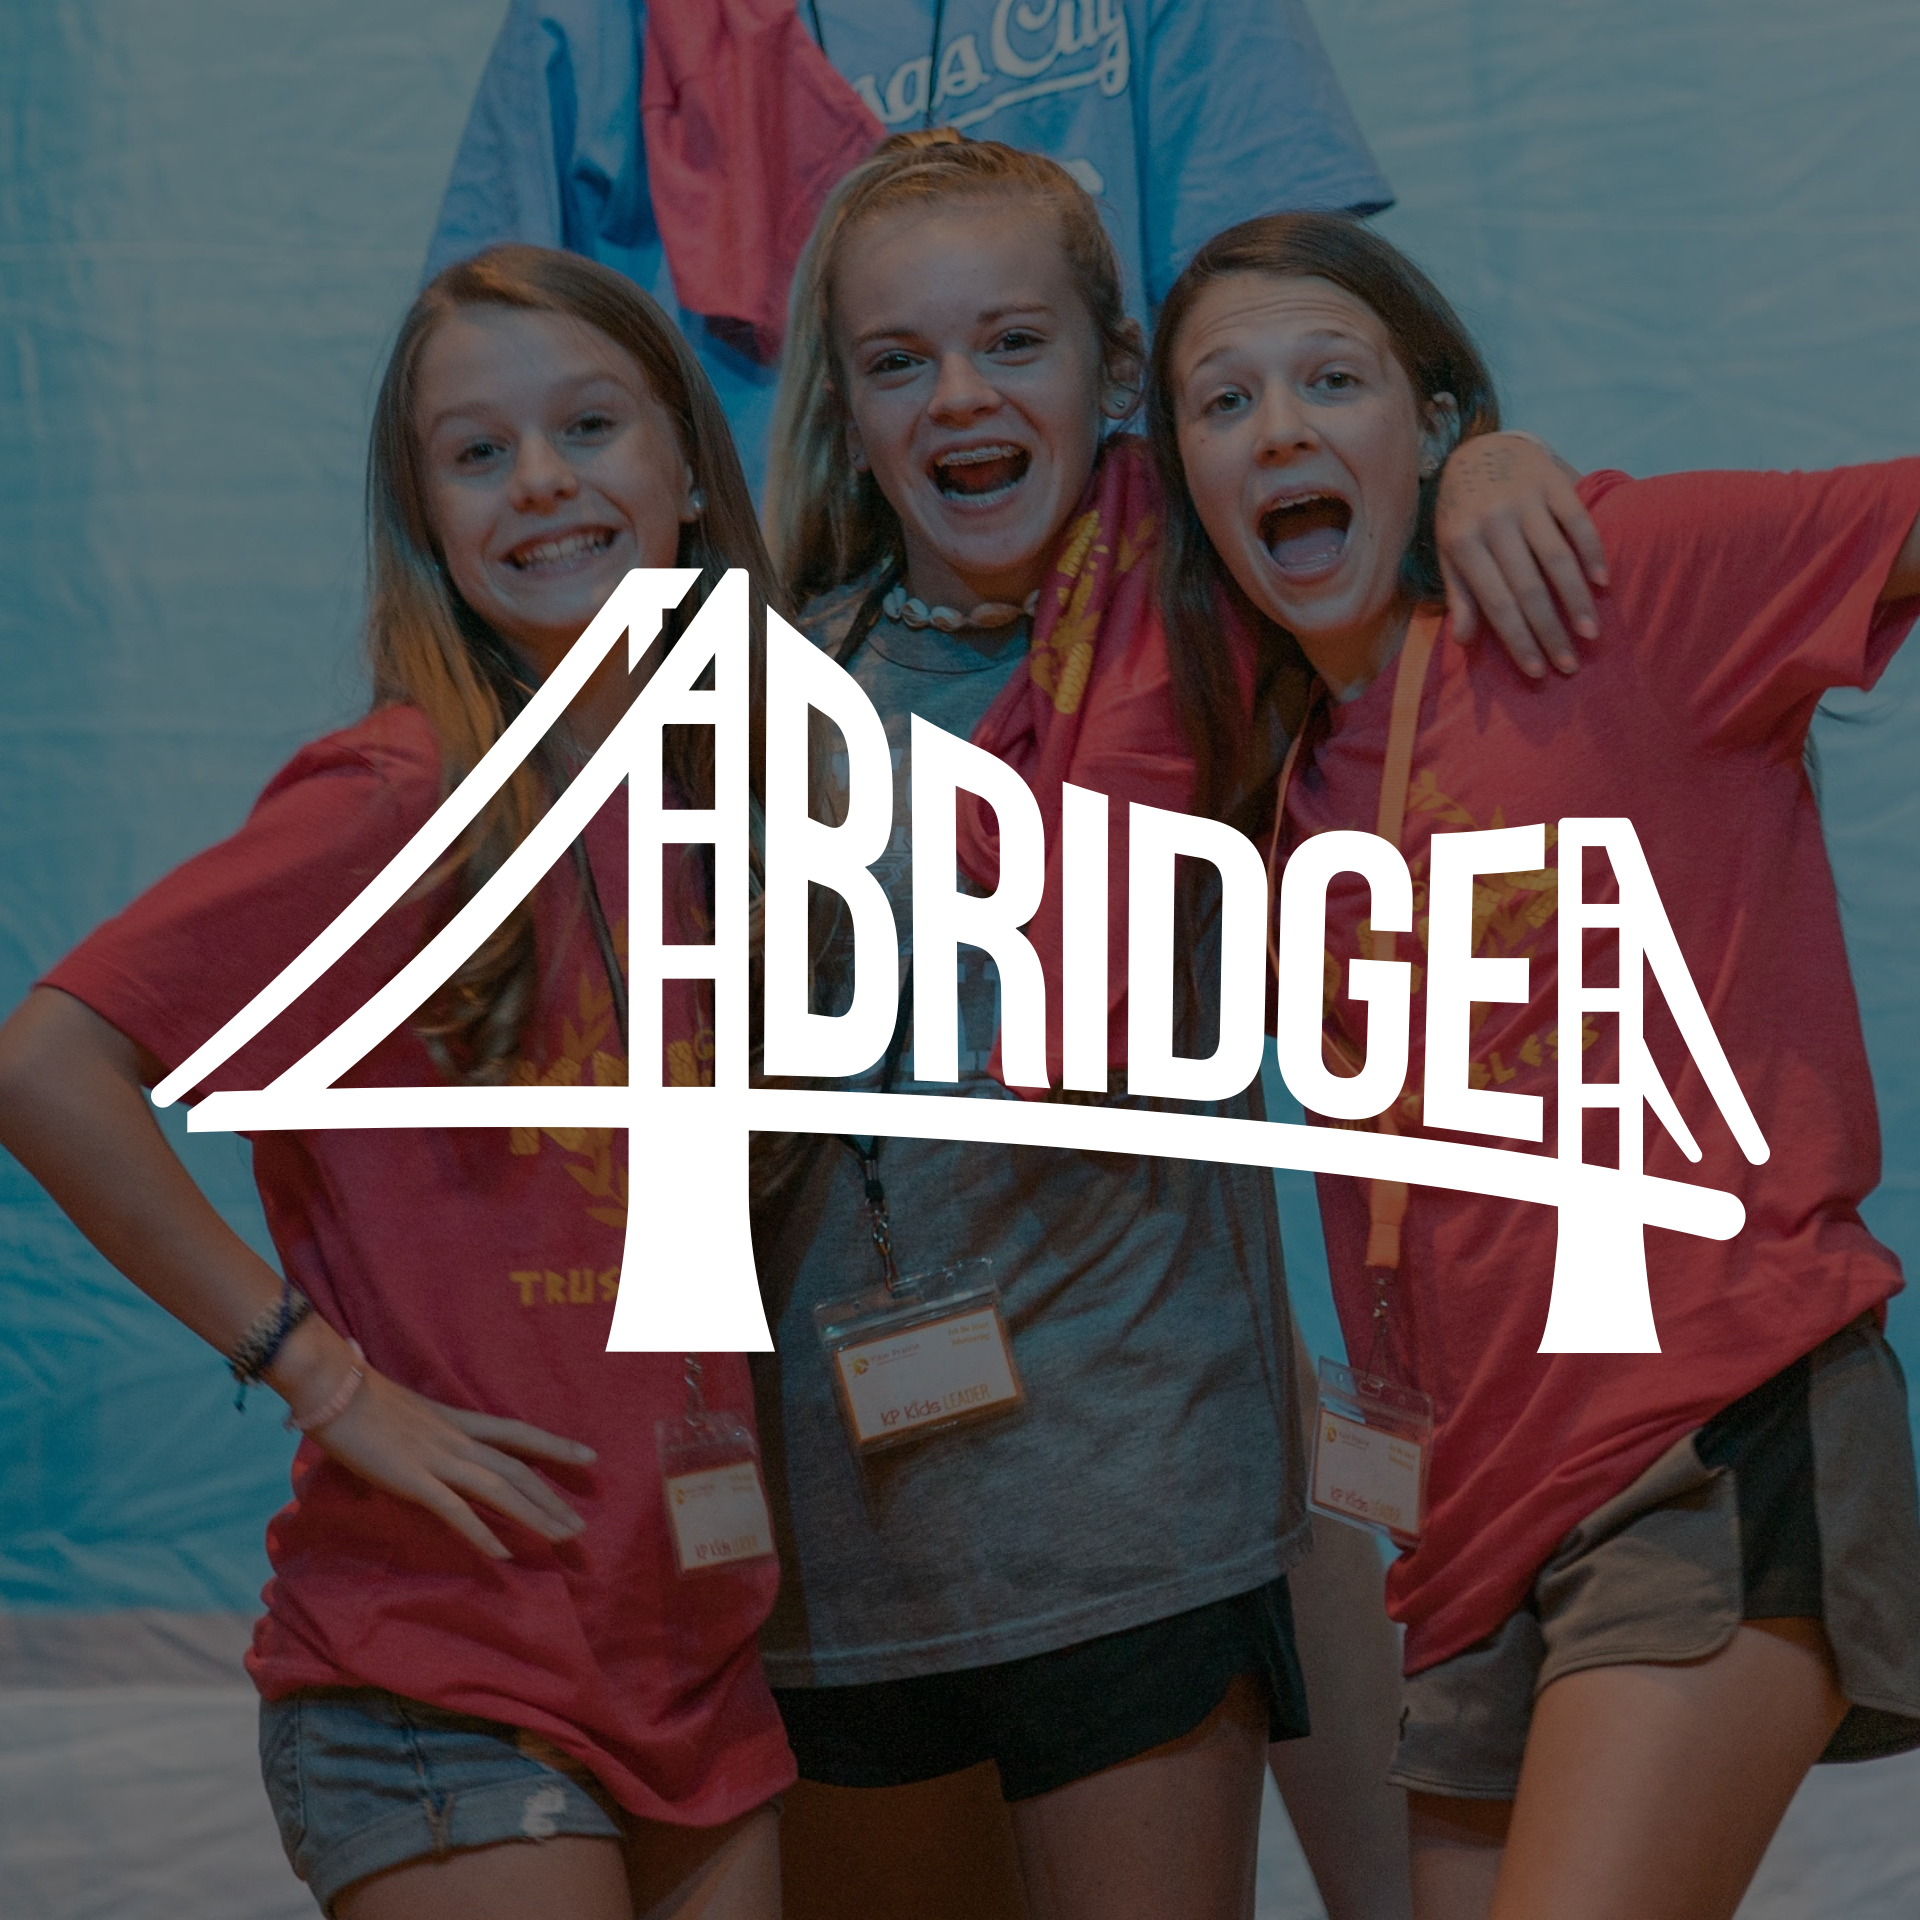 4th Grade – 5th Grade - Bridge is our 4th and 5th grade ministry program that meets pre-teens where they are as they navigate life from childhood into the teenage years. These kids enjoy getting to hang out in a separate area from the younger elementary kiddos and learn about their faith in engaging ways relevant to them.